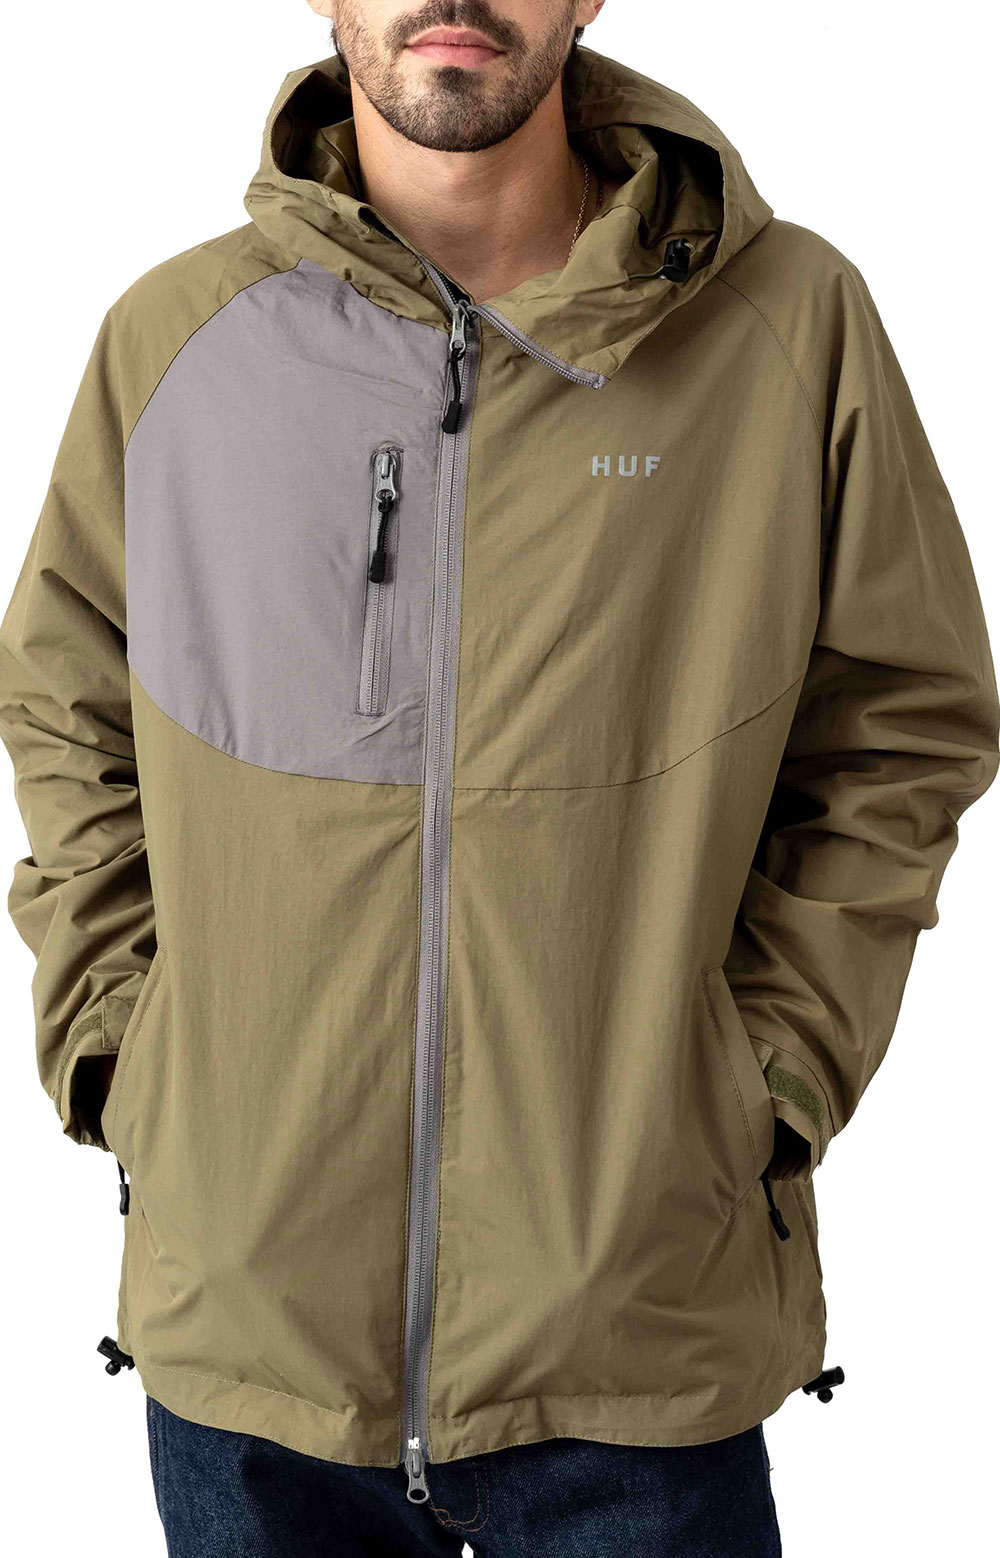 Standard Shell 2 Jacket - Martini Olive